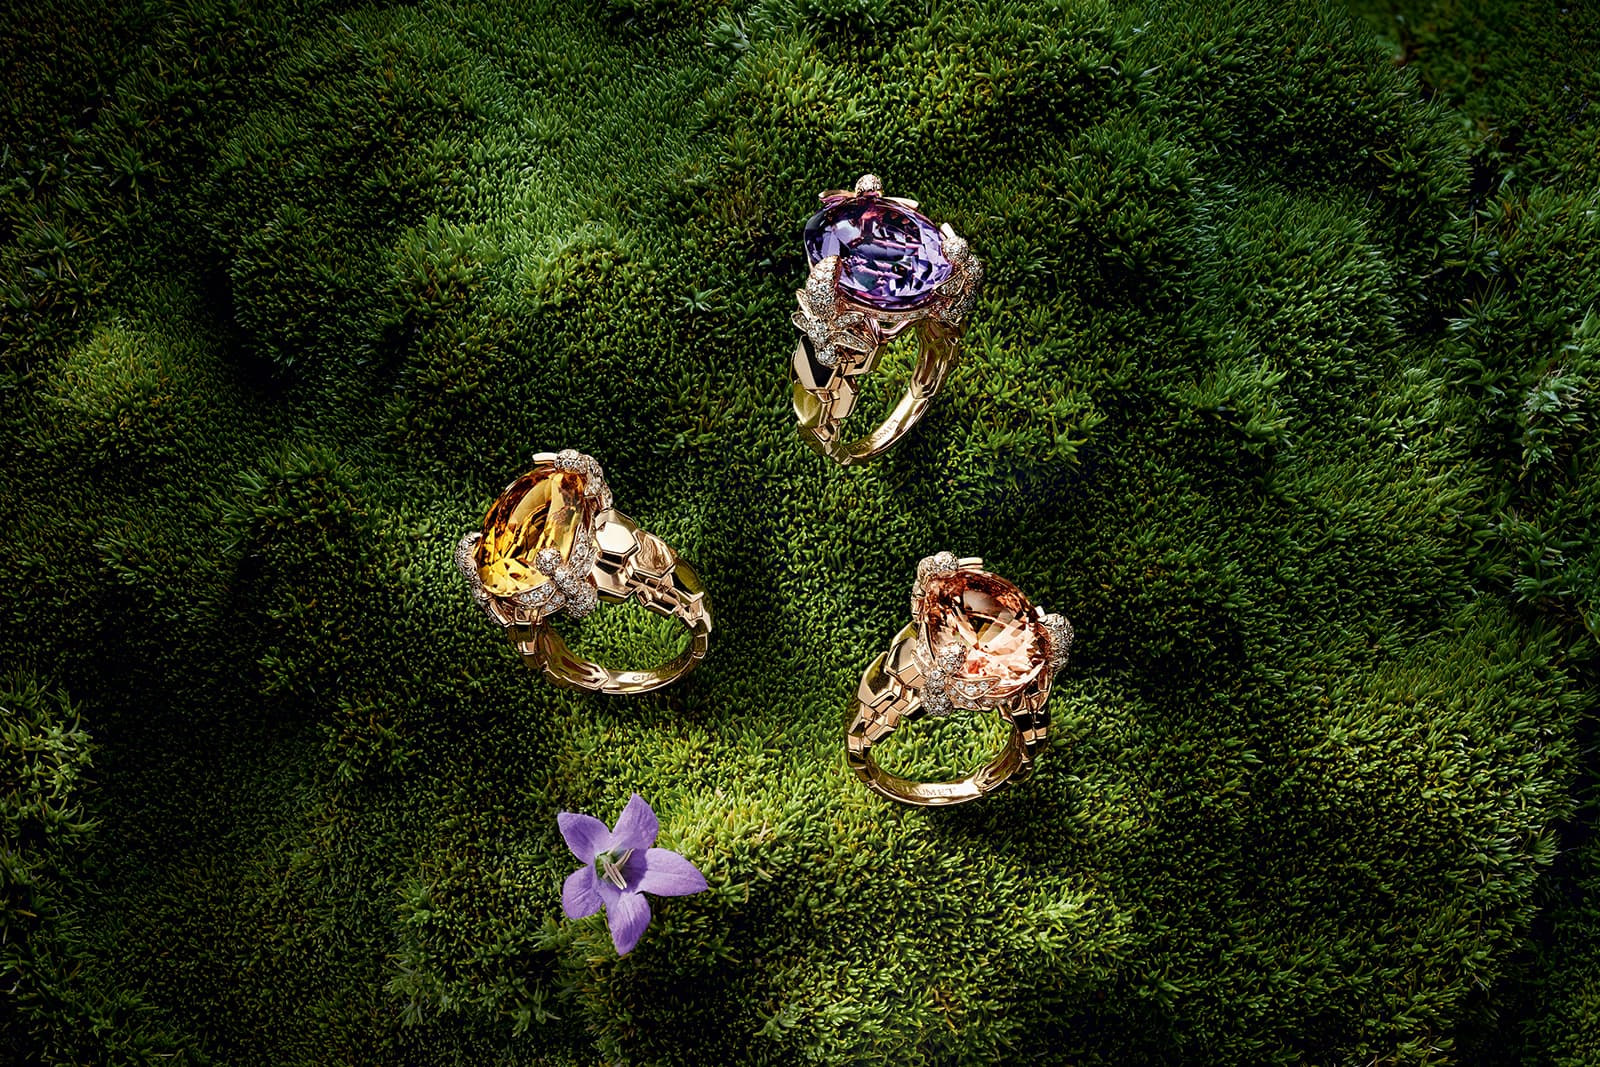 Chaumet 'Bee My Love' rings with yellow sapphire, morganite and amethyst all accented with diamonds in rose gold